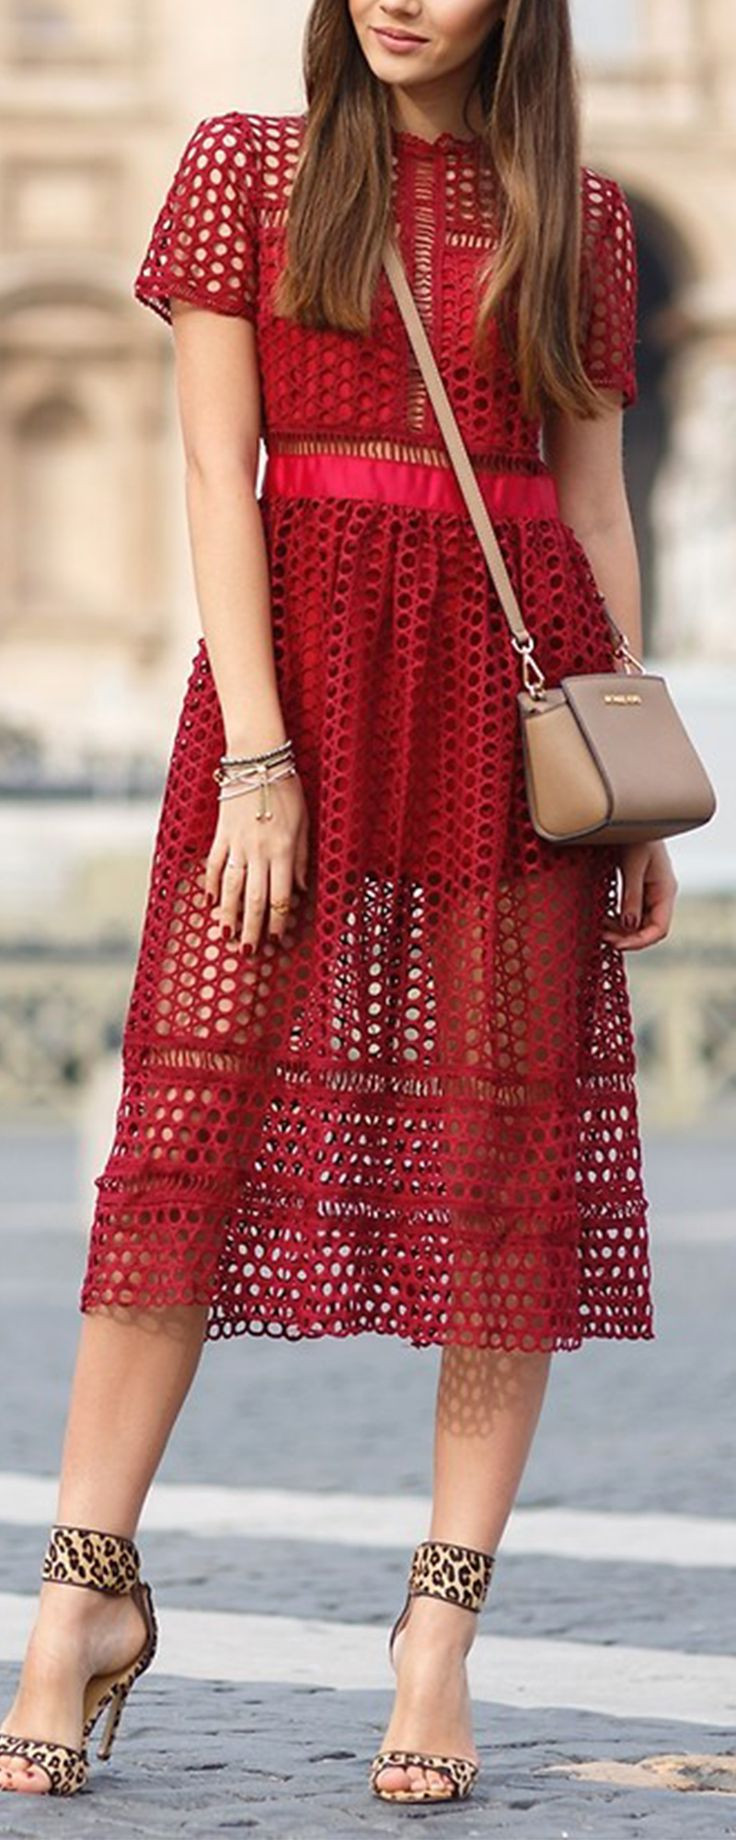 Vintage, chic & gorgeous hollow dress for women. Love the red dress. Lovely and pretty!